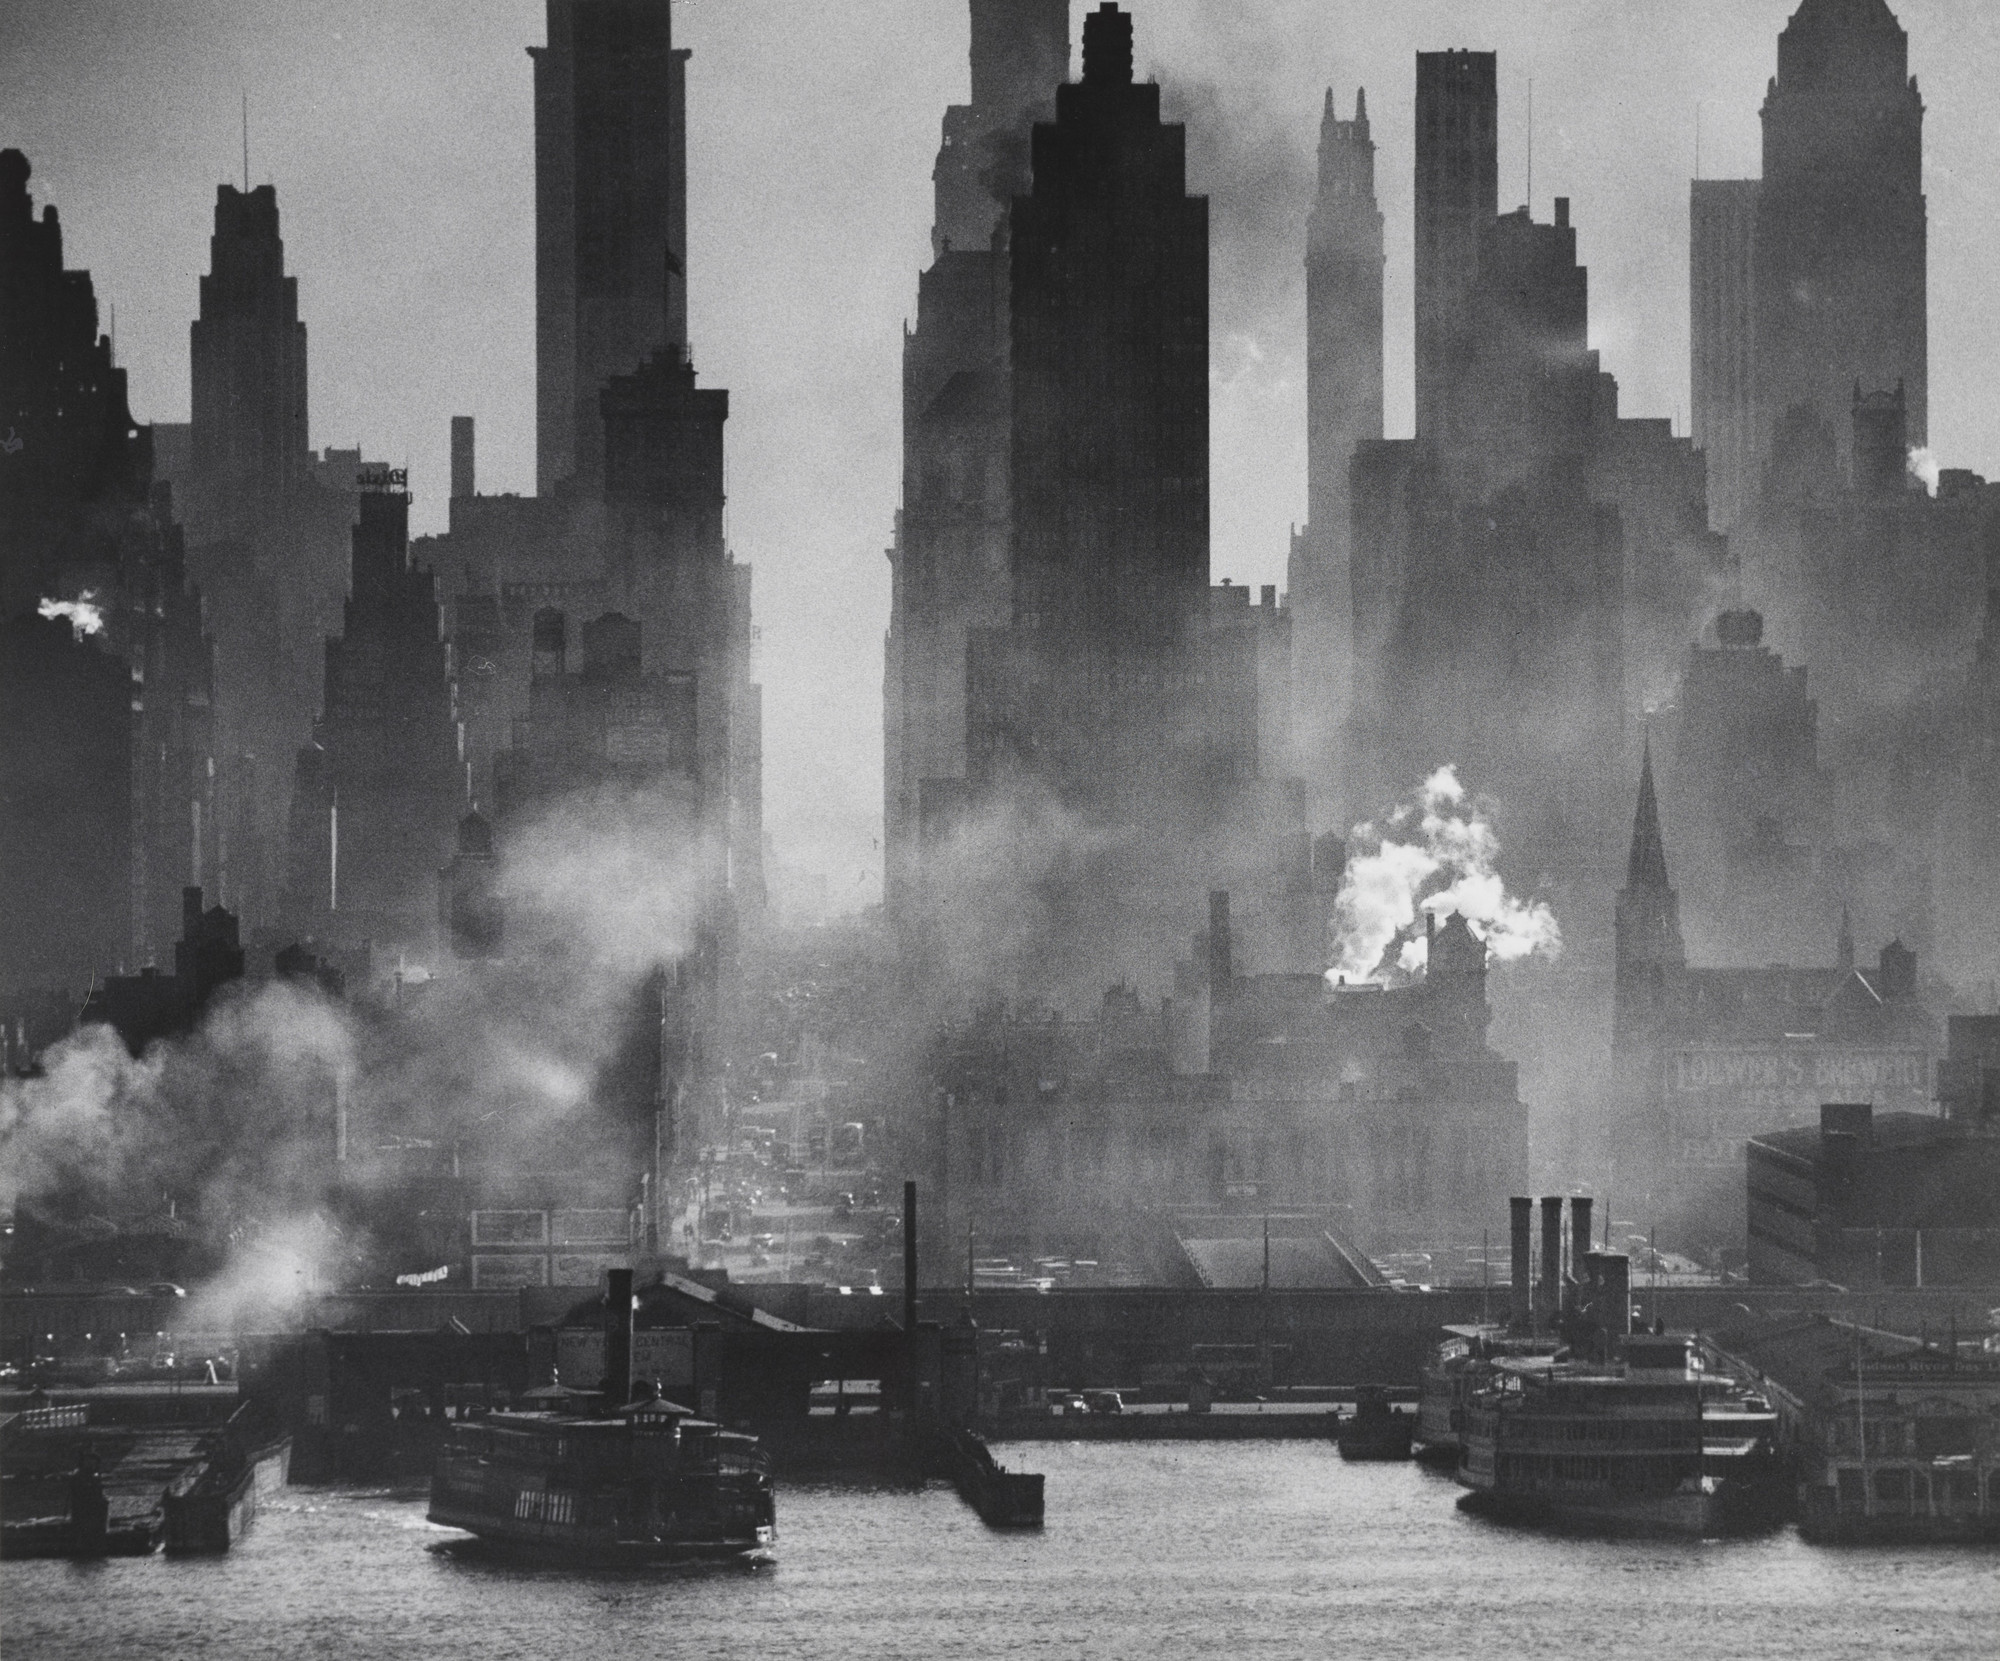 Andreas Feininger. 42nd Street Seen from Across the Hudson. c. 1945